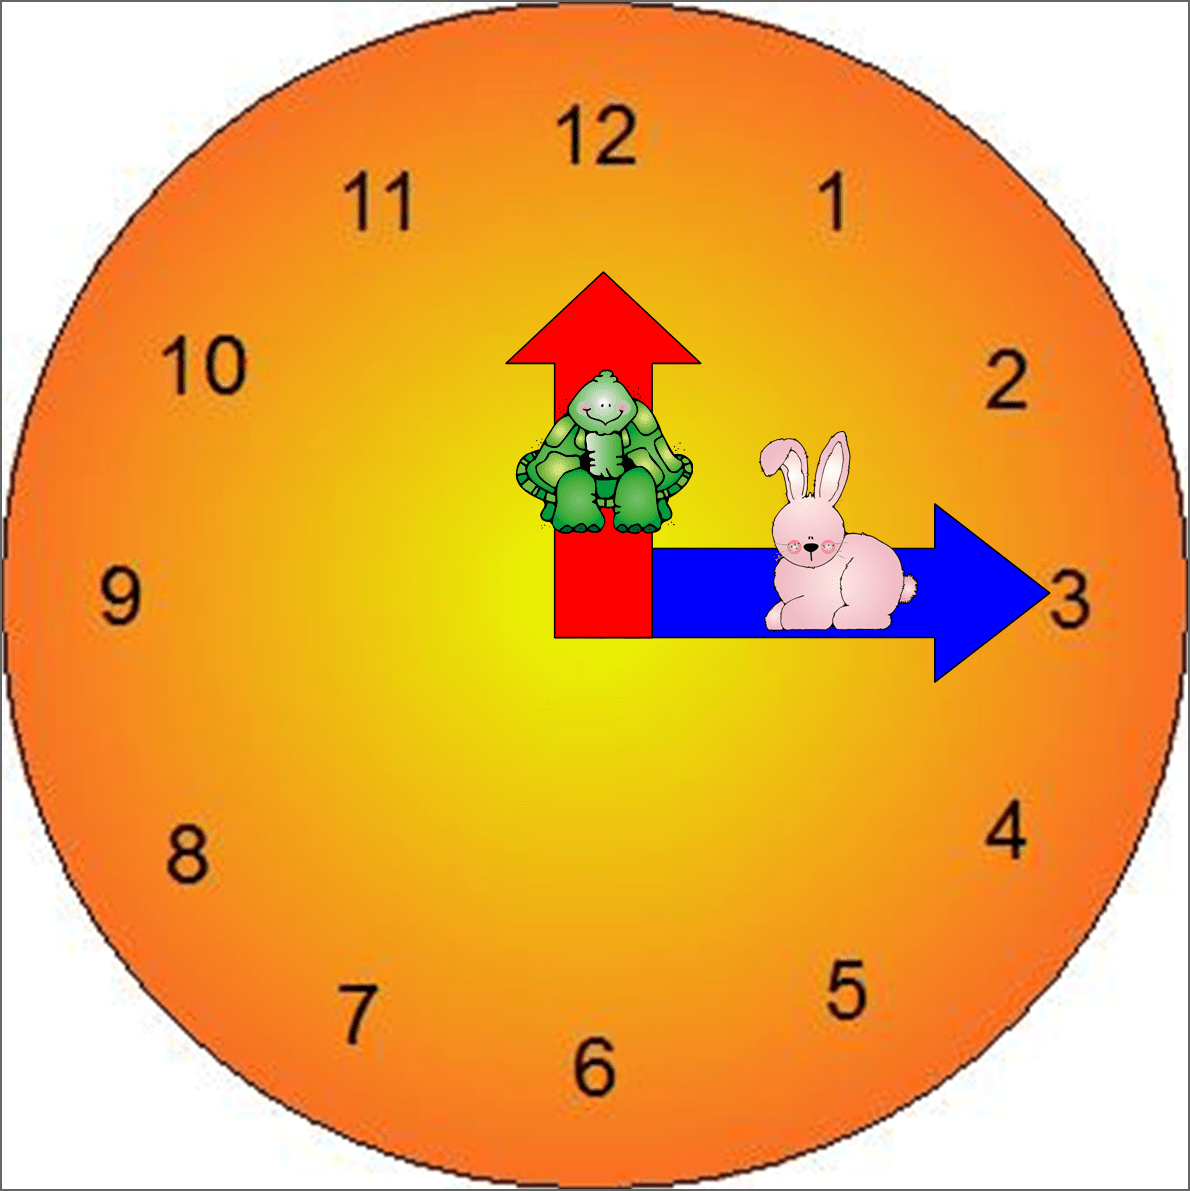 Great Tip On Minute Hand Put Pix Of Rabbit To Show Minutes